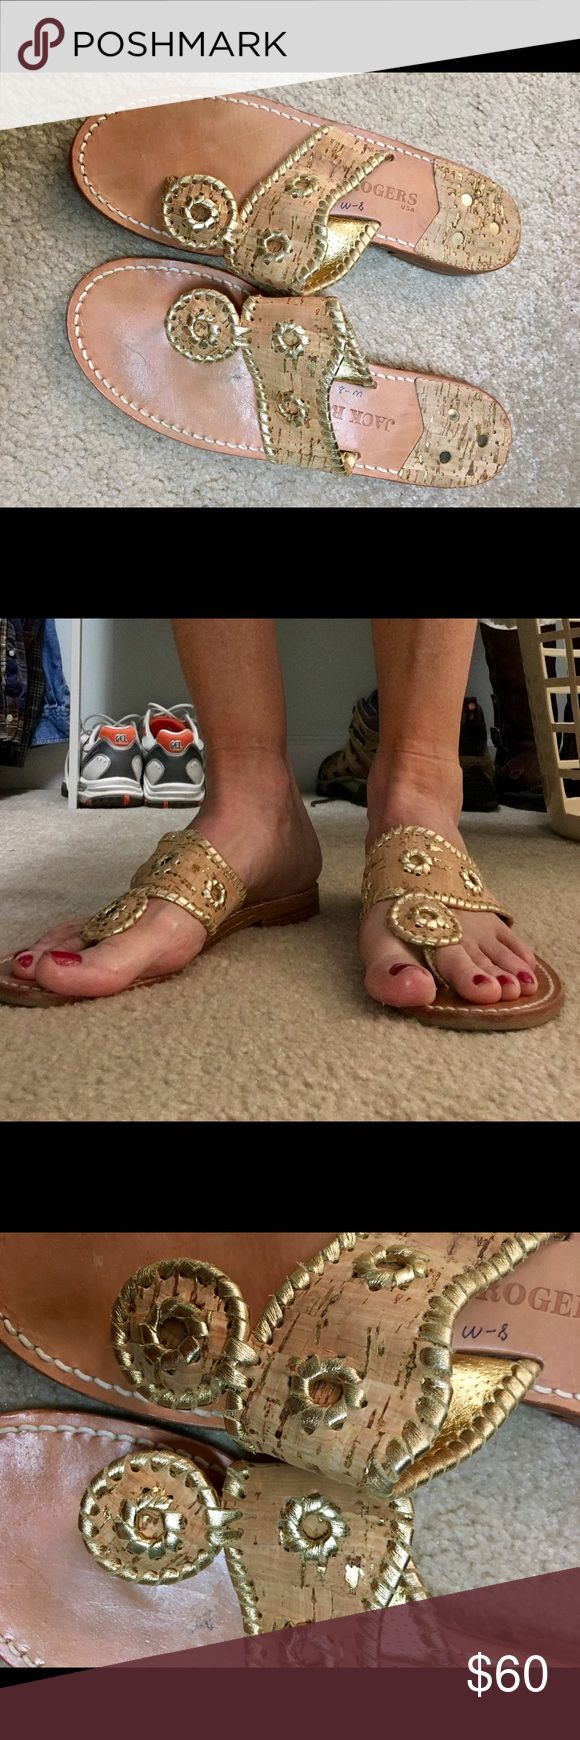 Jack Rogers Napa Sandals Authentic Jack Rogers Napa Valley Sandal; size 8 medium; normal wear, but great condition; popular Natural Cork and Gold. Goes with everything! No trades. Jack Rogers Shoes Sandals